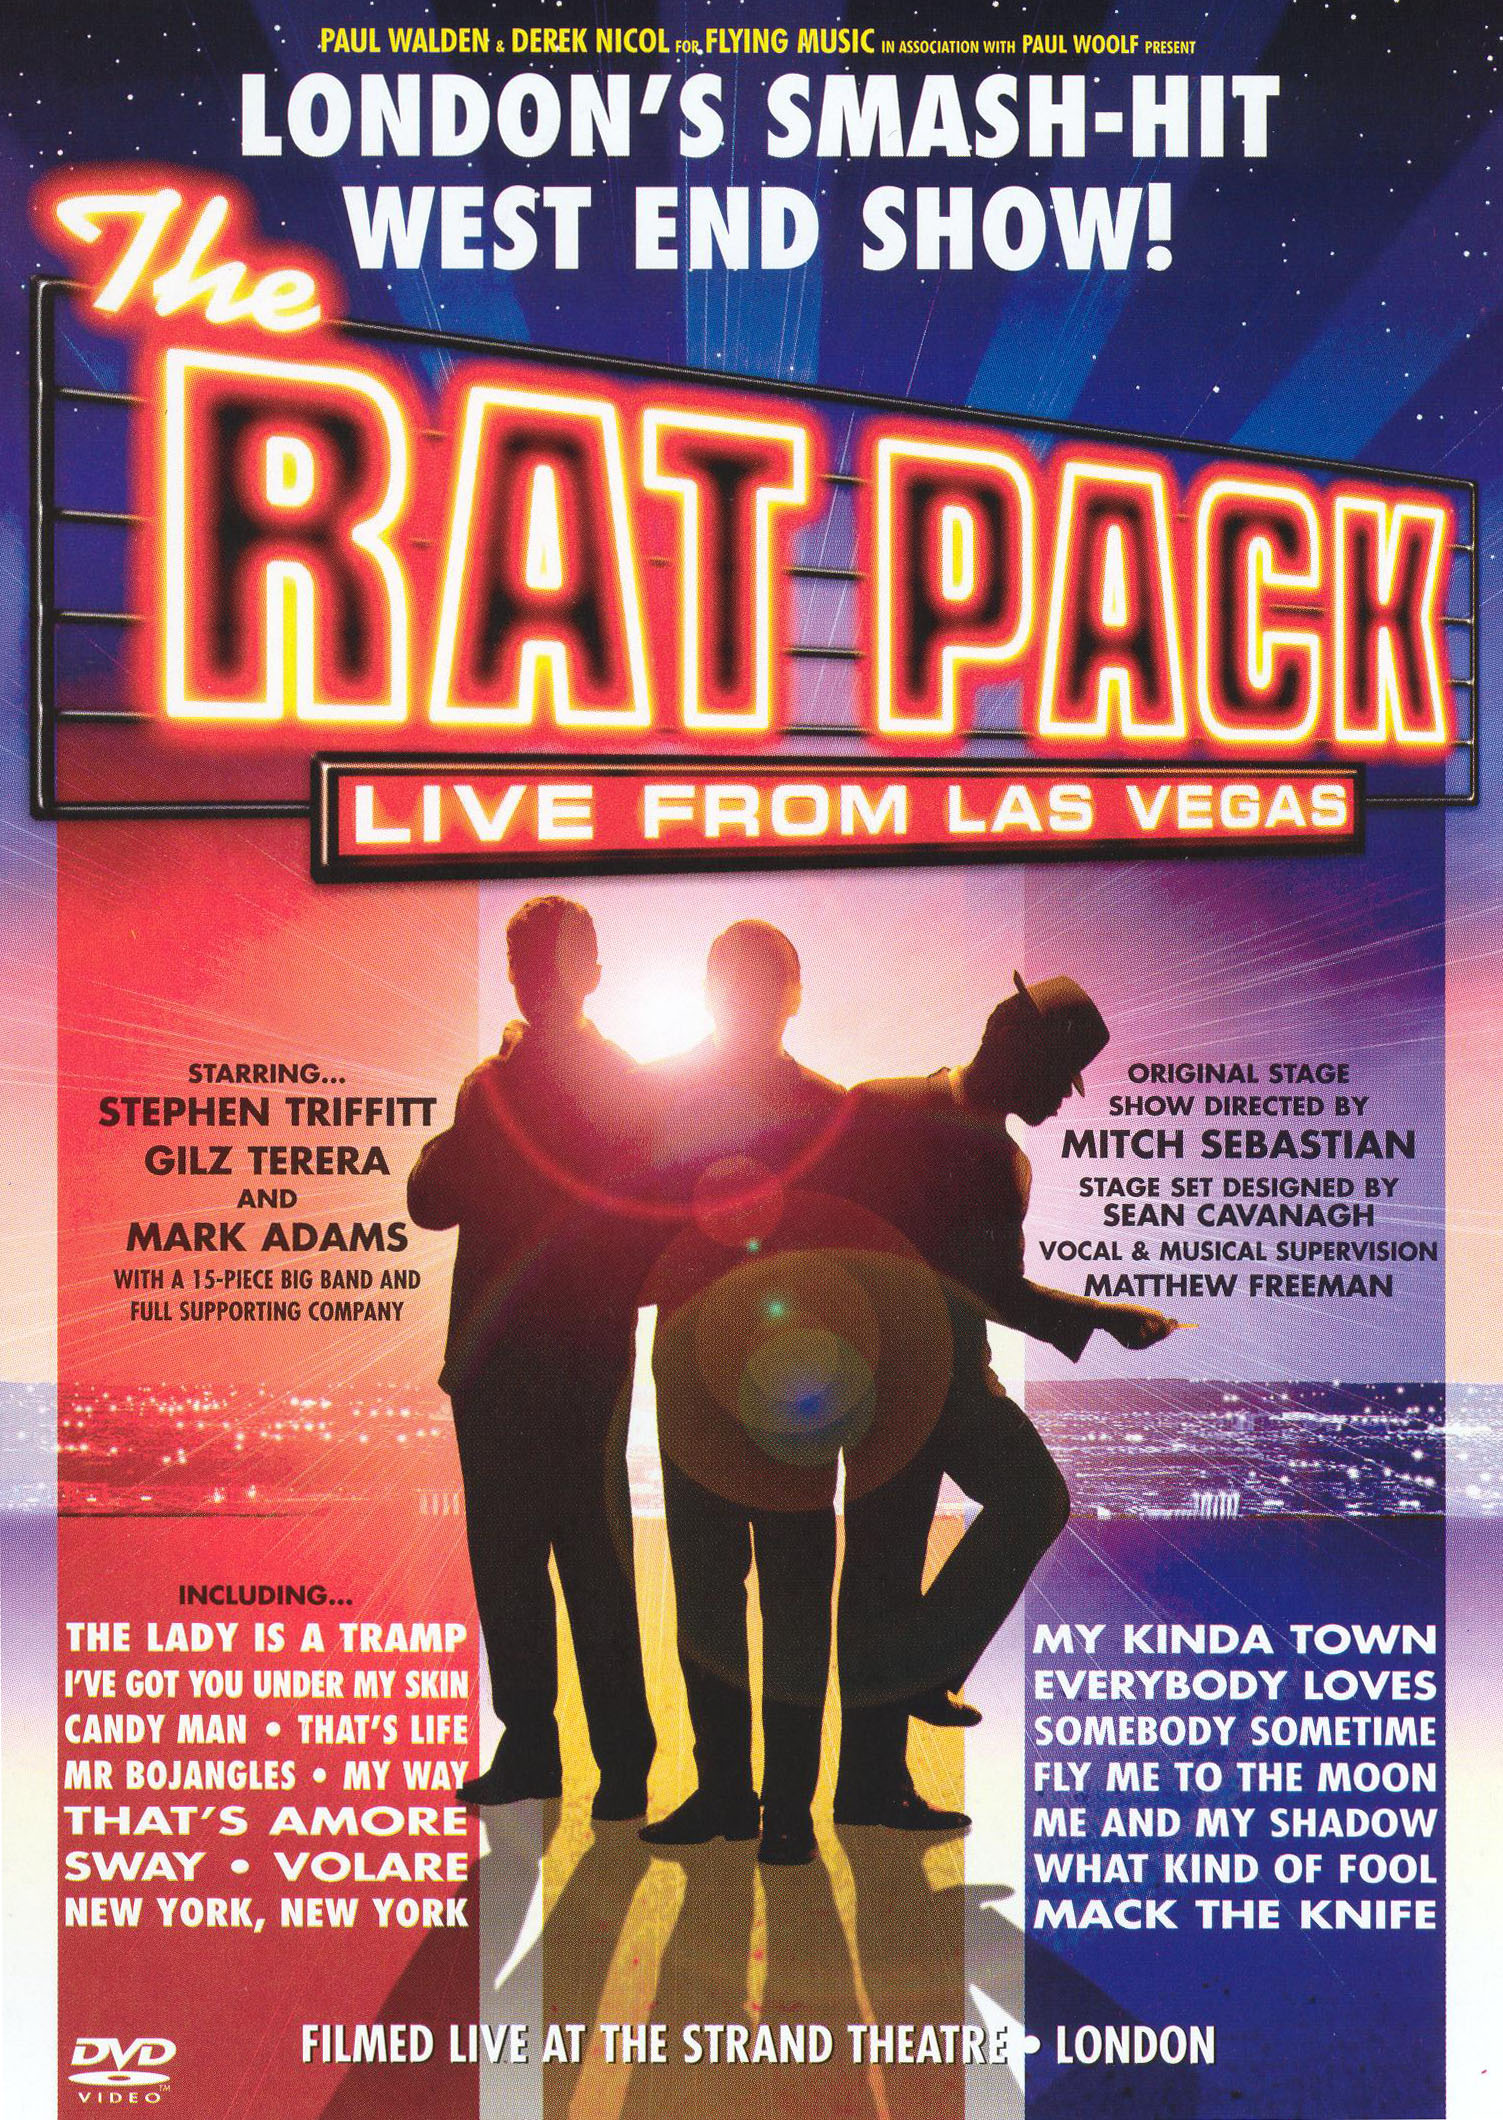 The Rat Pack: Live From Las Vegas